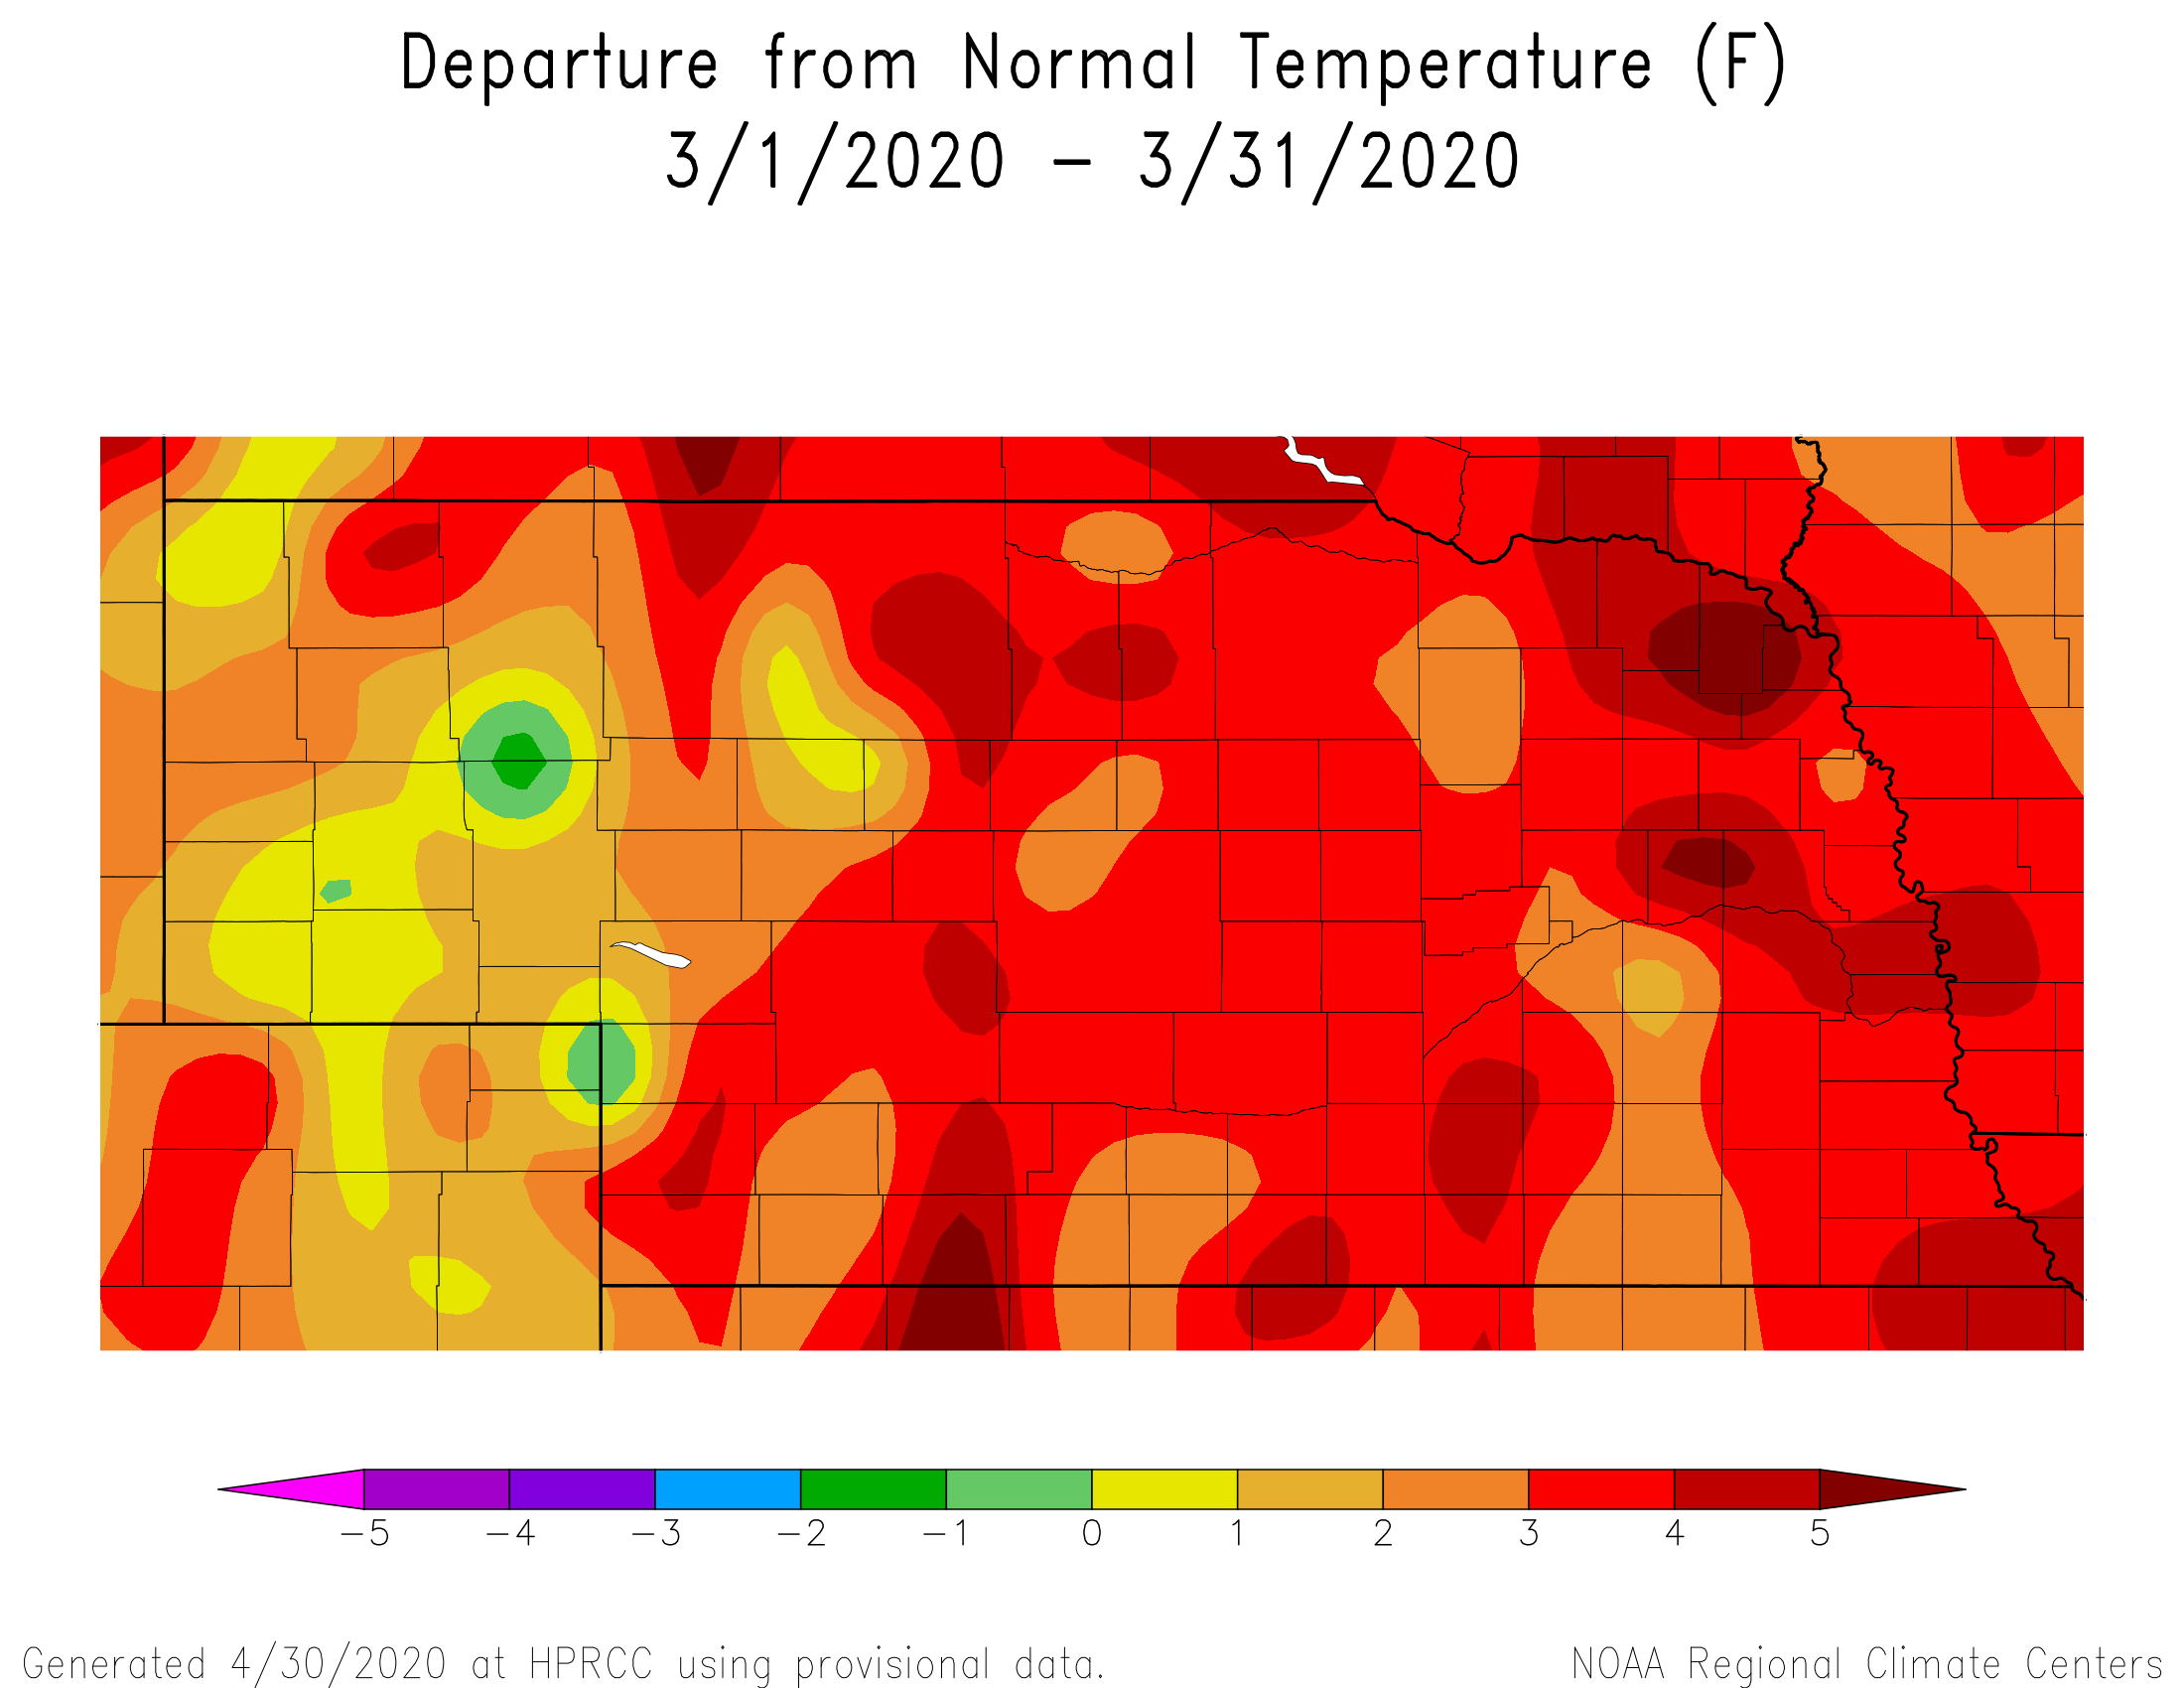 Nebraska departure from normal temps for March 2020